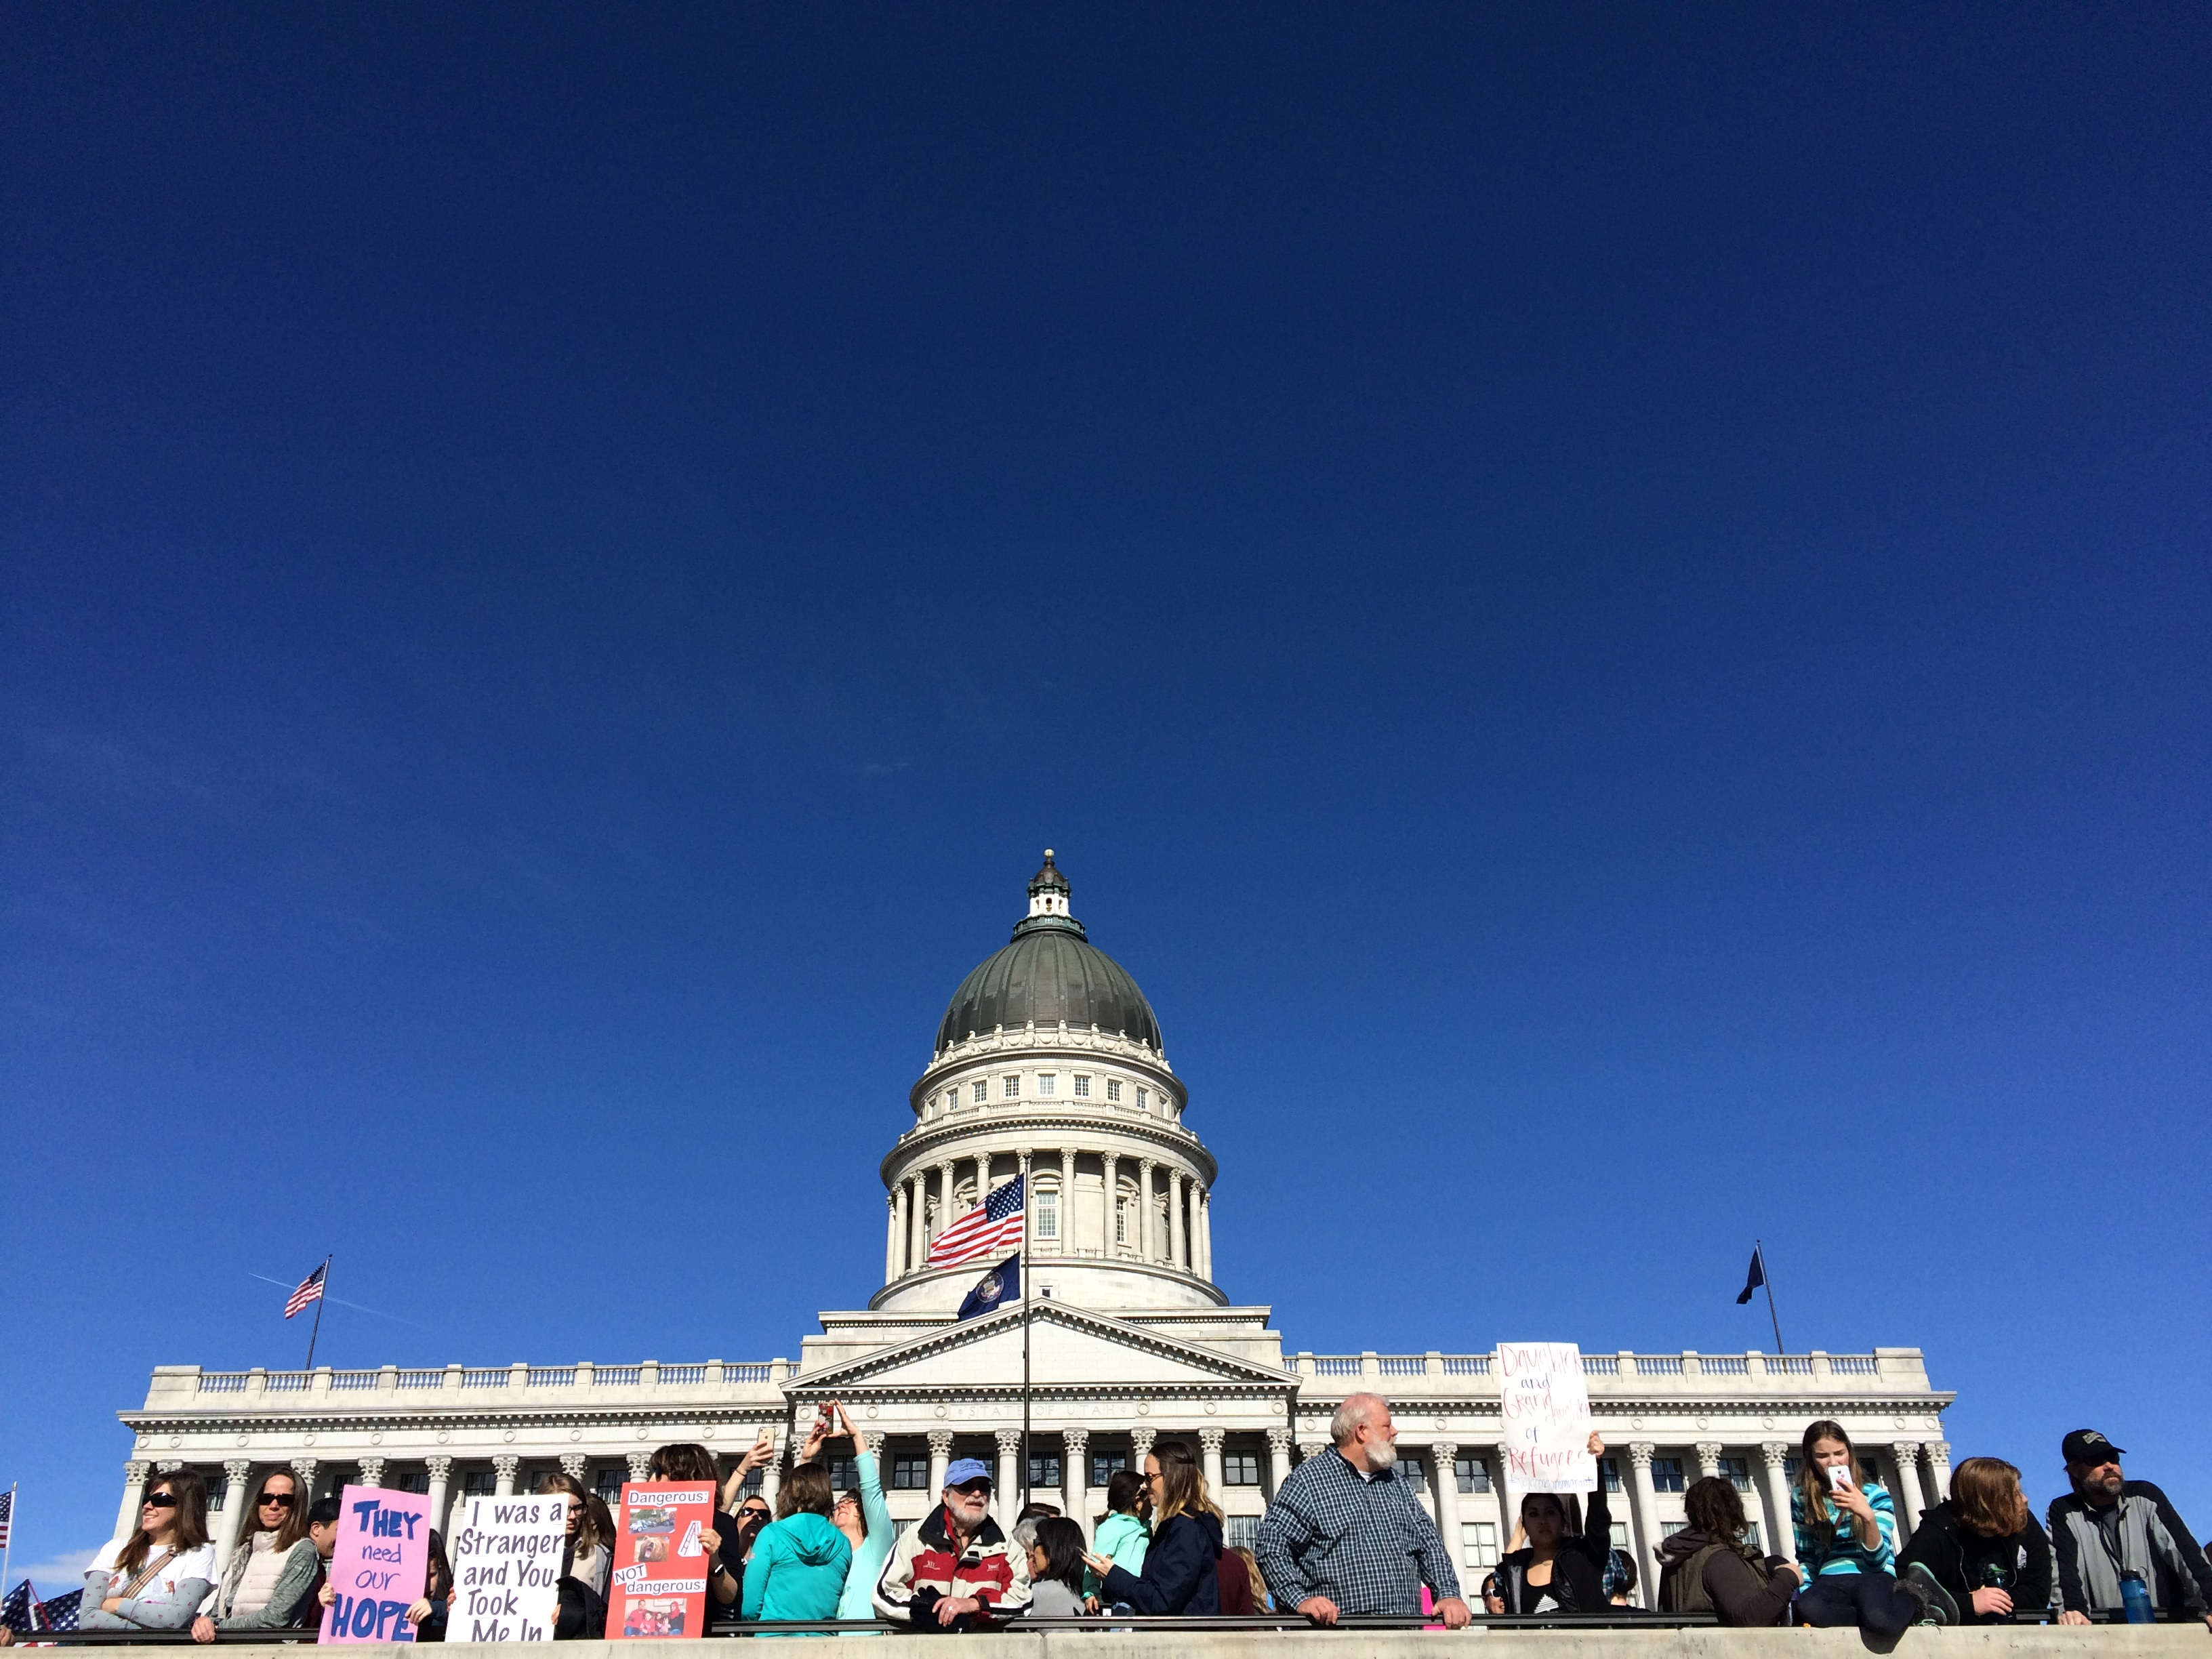 Caption: Marchers gather in front of the Utah State Capitol, Credit: Tamarra Kemsley